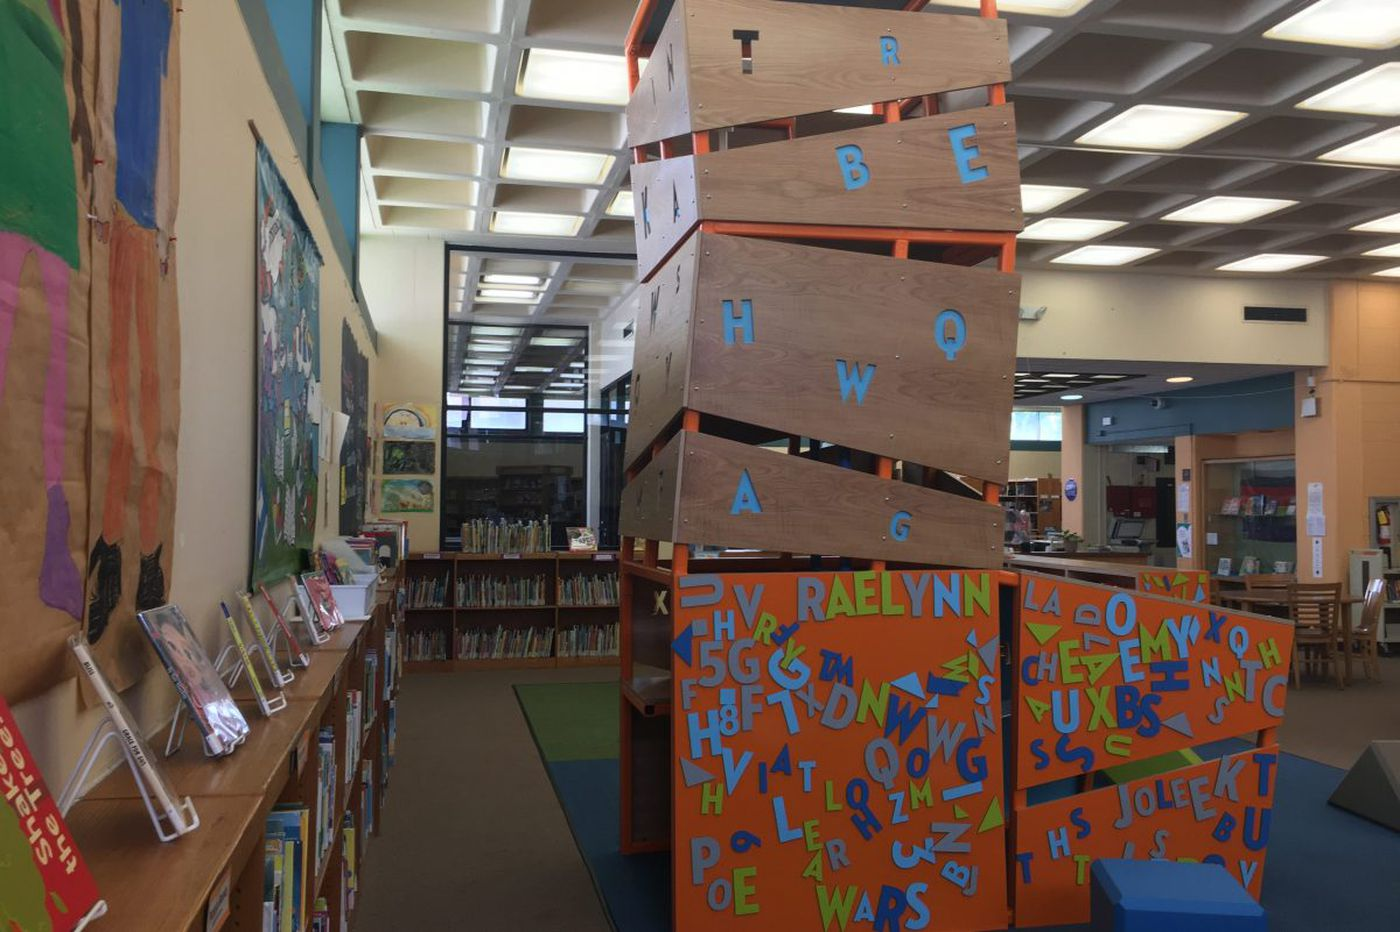 Philly library initiative encourages kids to run, climb, and scale walls